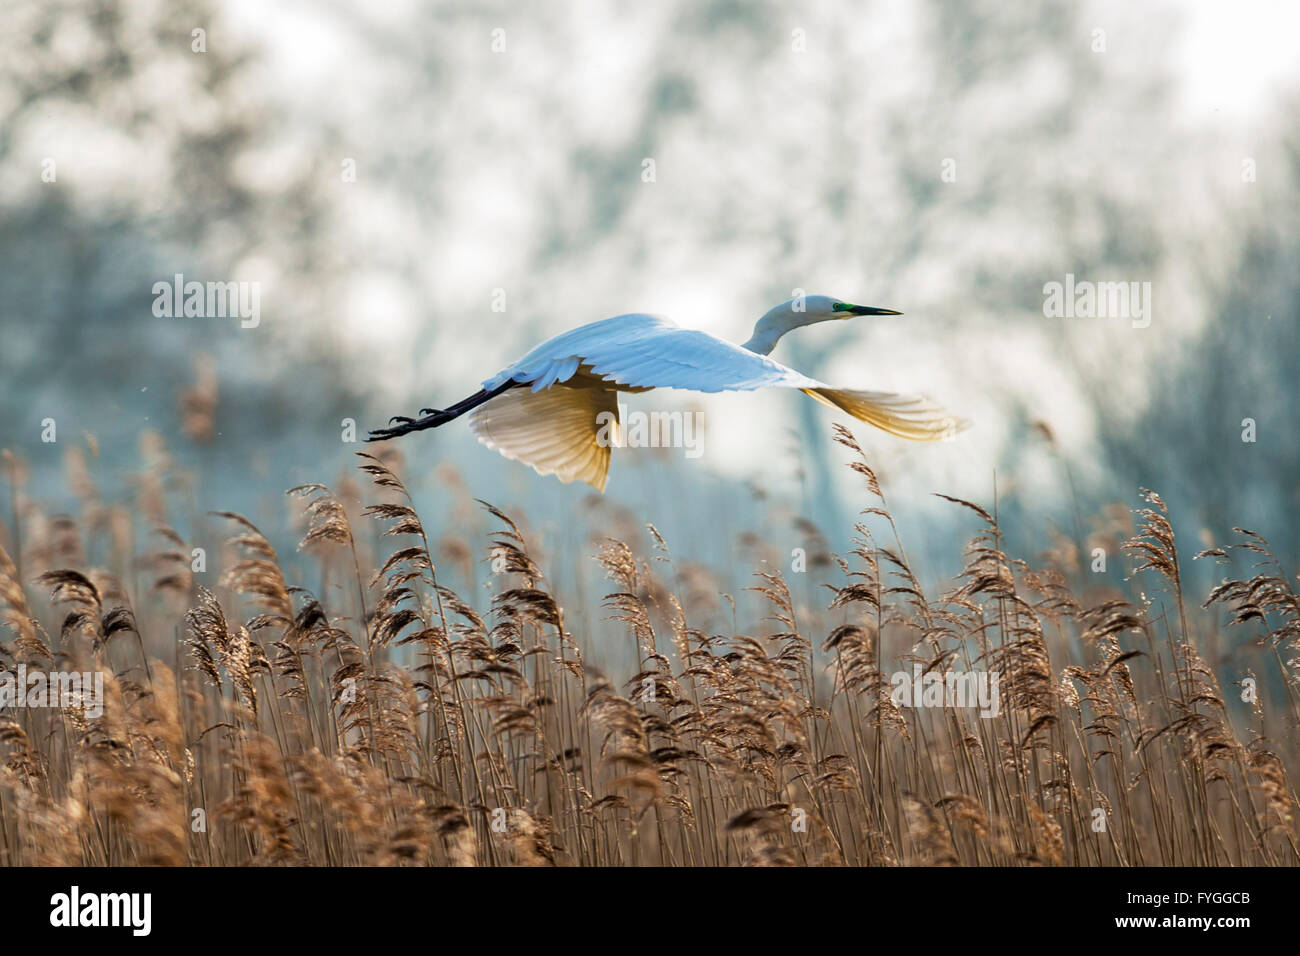 A great egret gliding over reeds - Stock Image